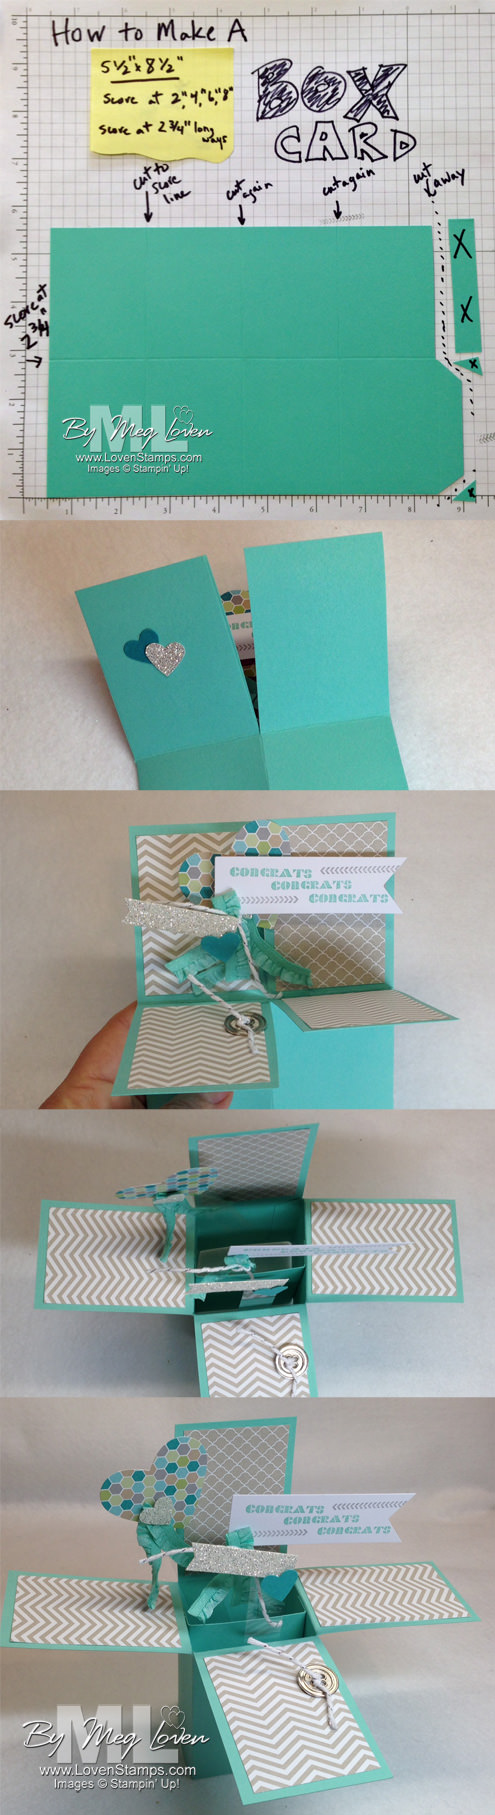 Pop Up Box Card Make It Simple A Video Tutorial